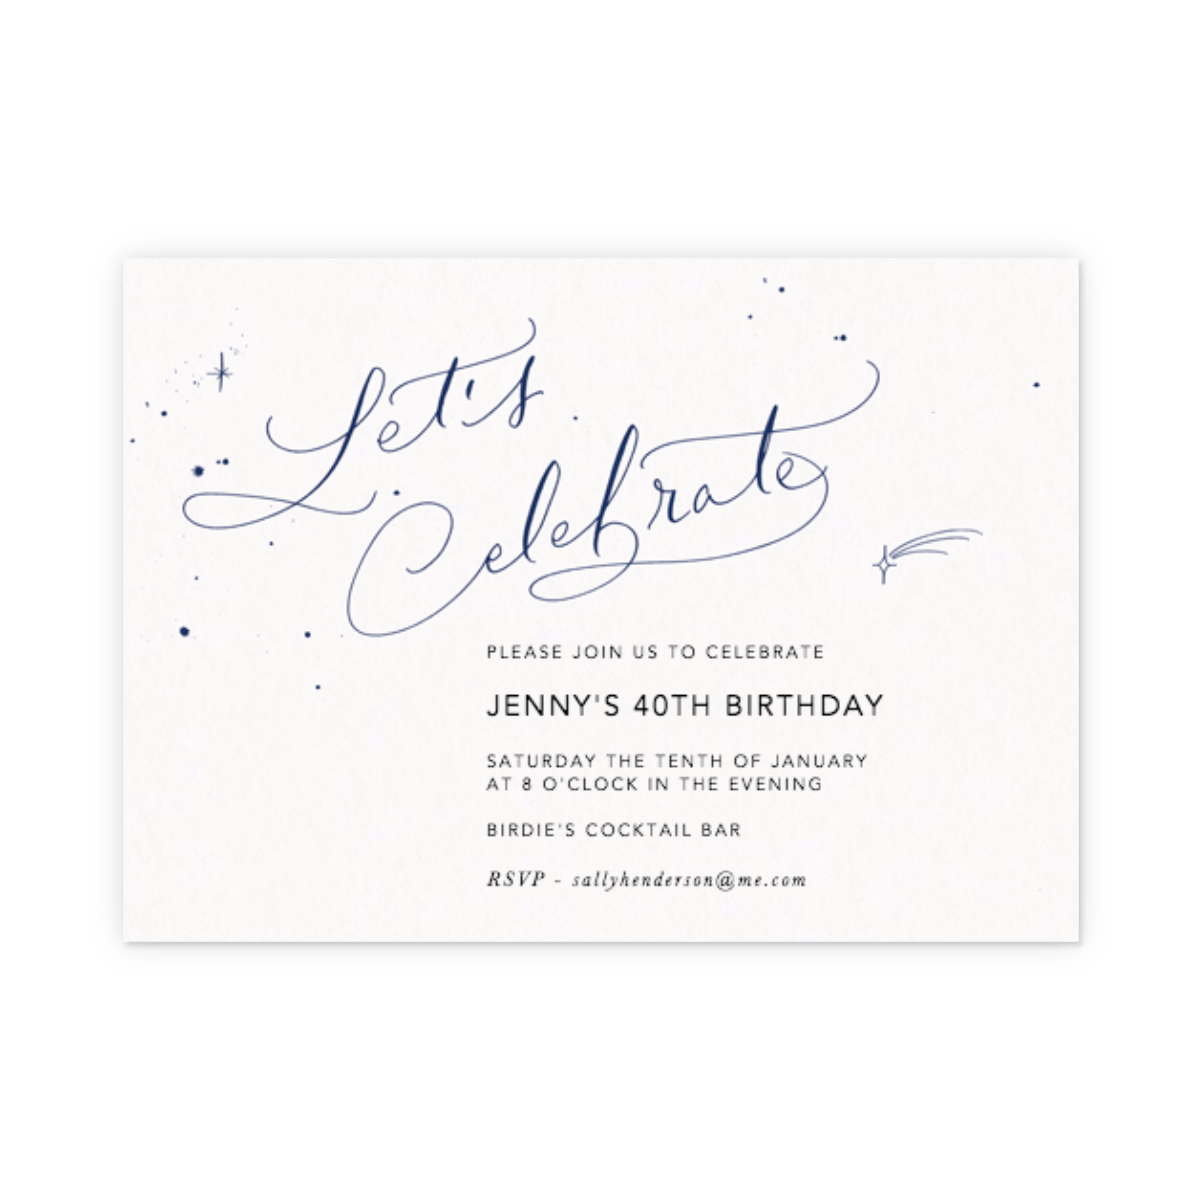 Https%3a%2f%2fwww.papier.com%2fproduct image%2f25976%2f10%2flet s celebrate starry navy 6501 front 1500636332.png?ixlib=rb 1.1